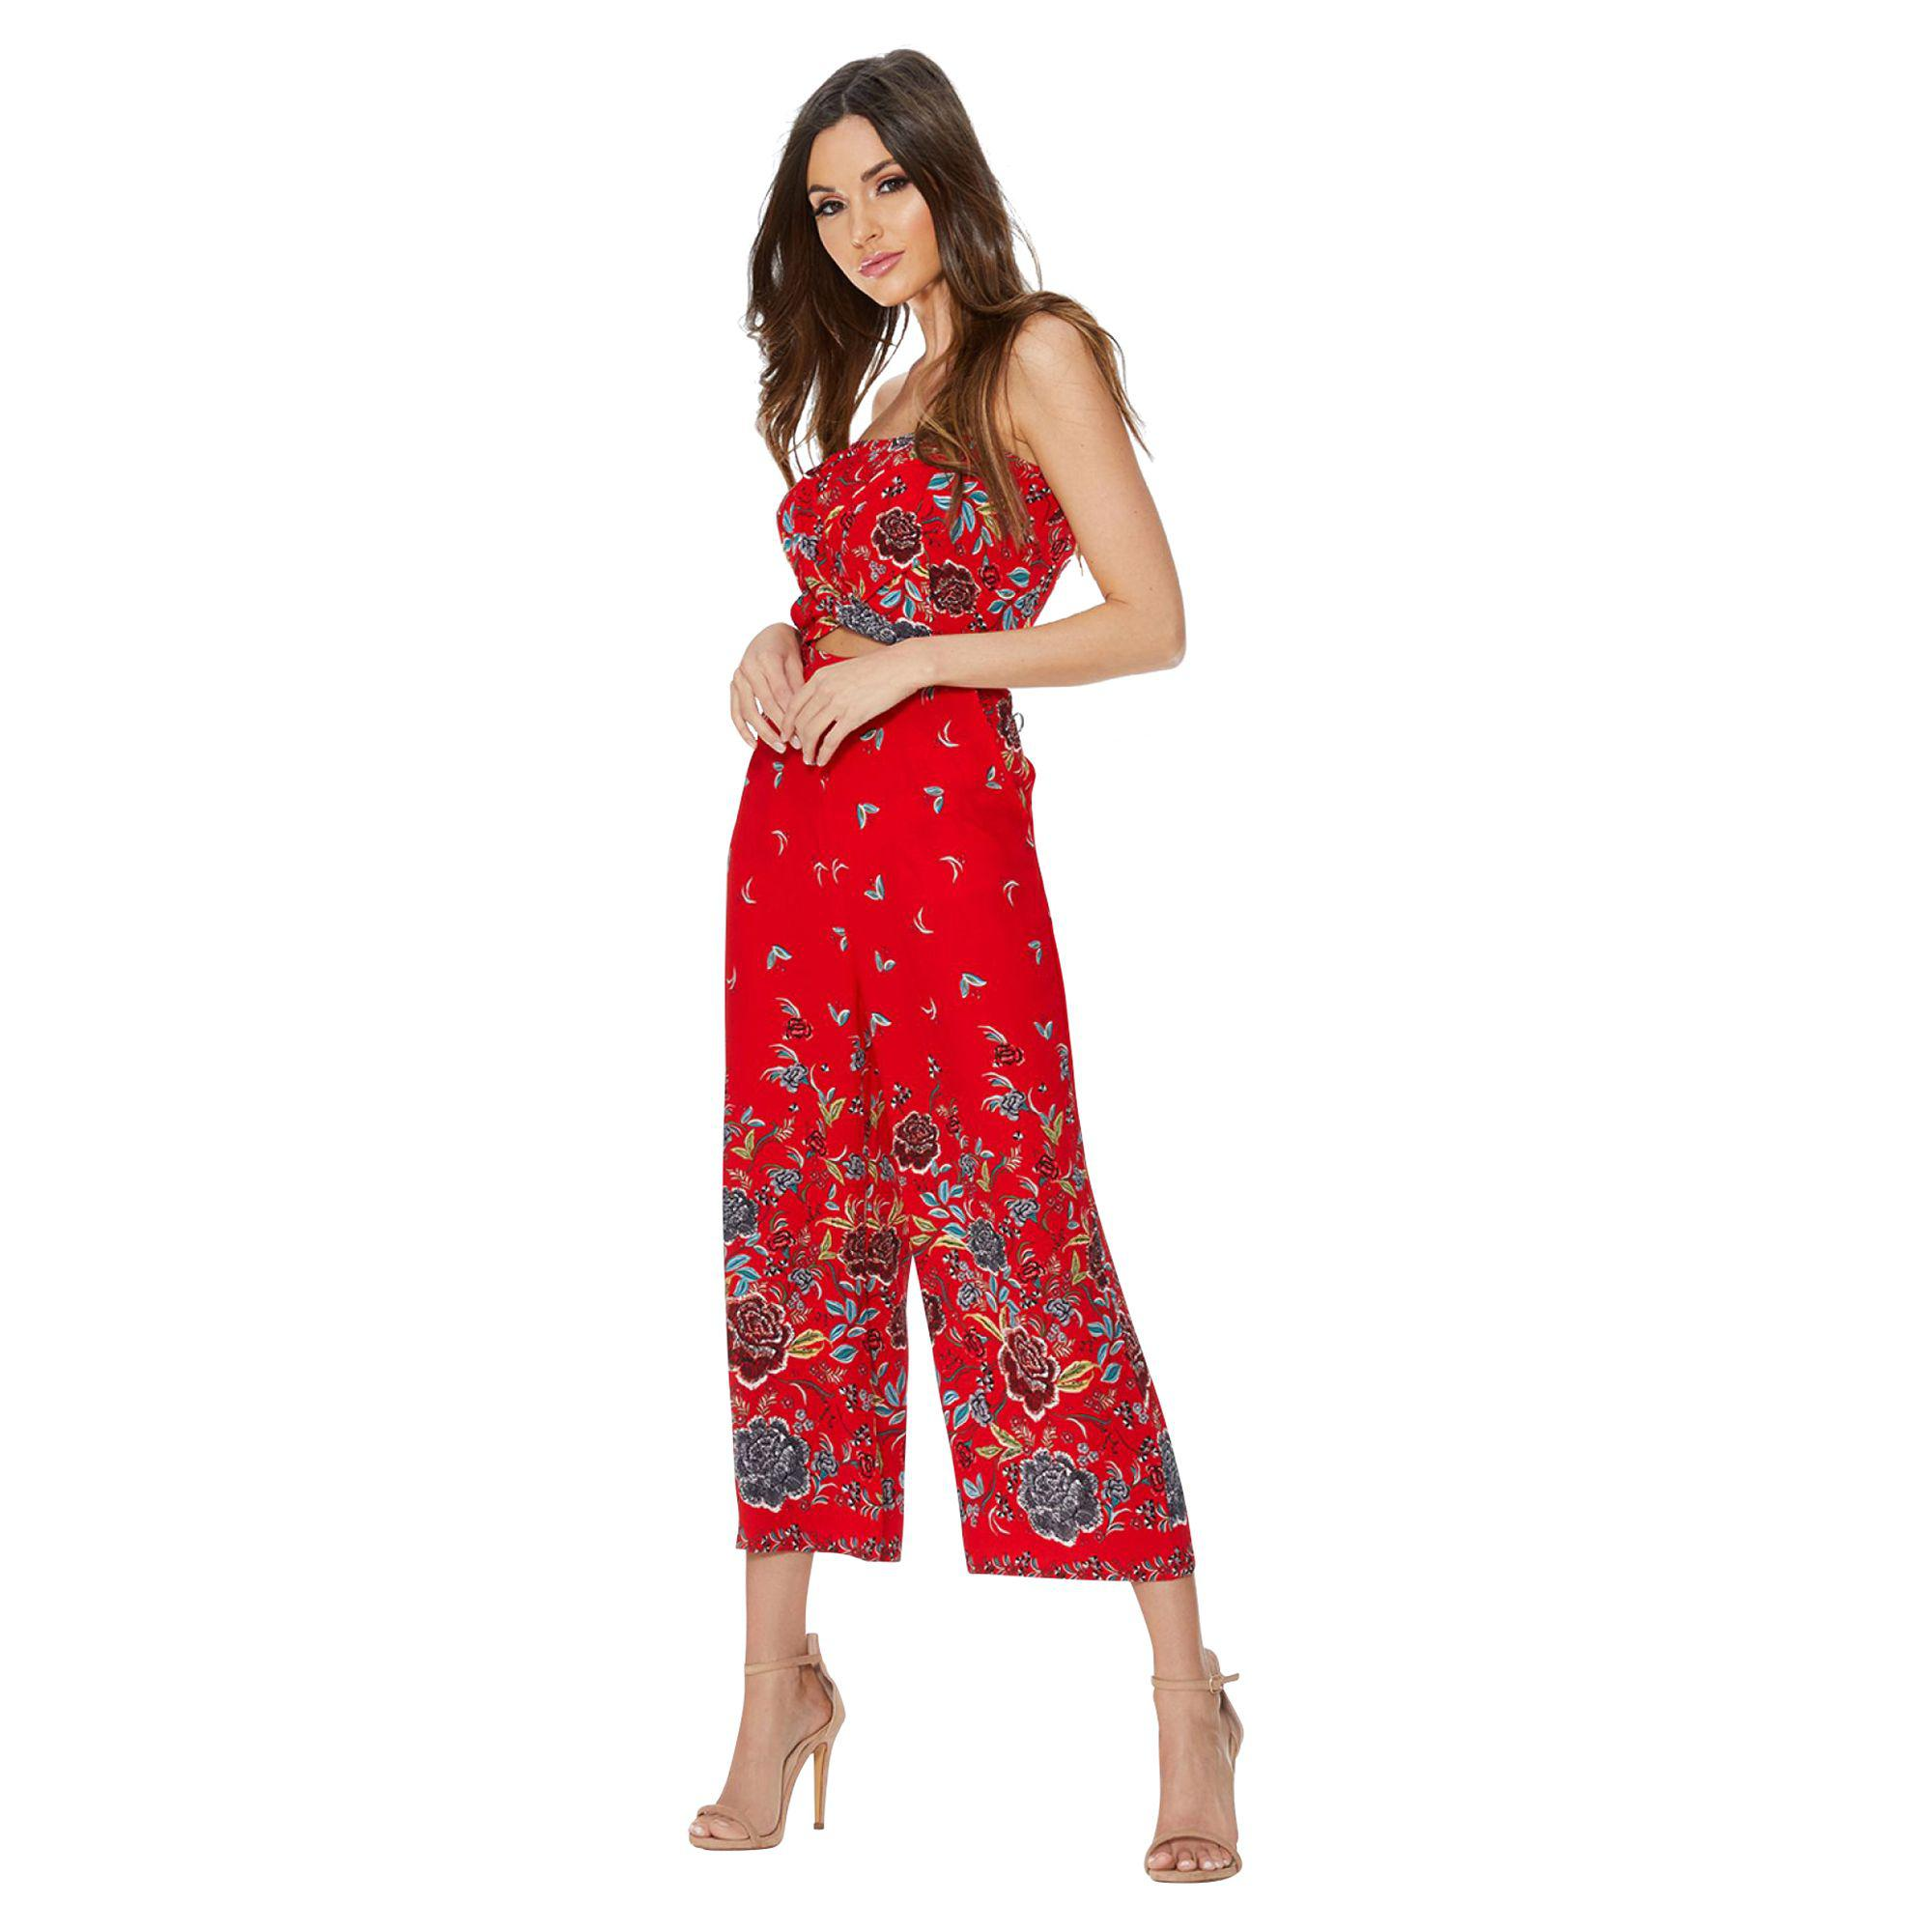 f5b55a9ffa8d Quiz Red Crepe Floral Print Culotte Jumpsuit in Red - Lyst